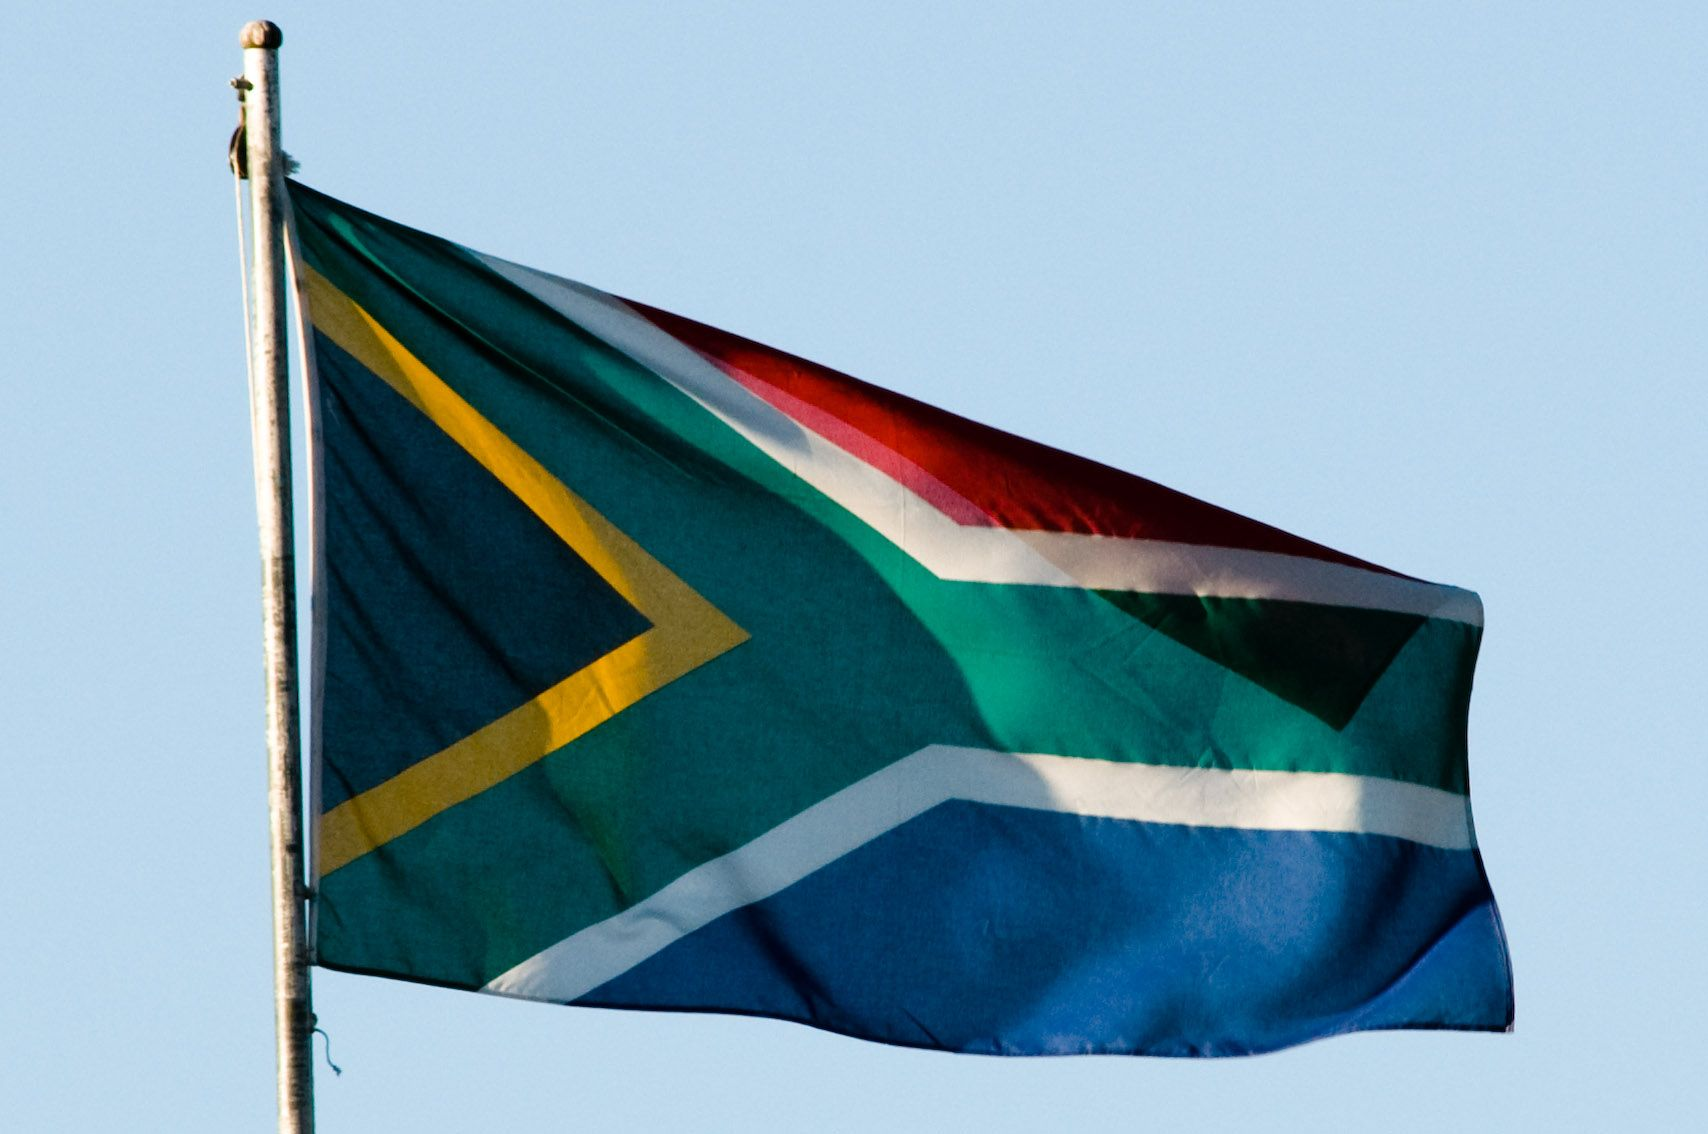 The Flag Of South Africa 1994 Includes Green Yellow And Black The Colors Of The African National Congress South African Flag Africa Africa Flag